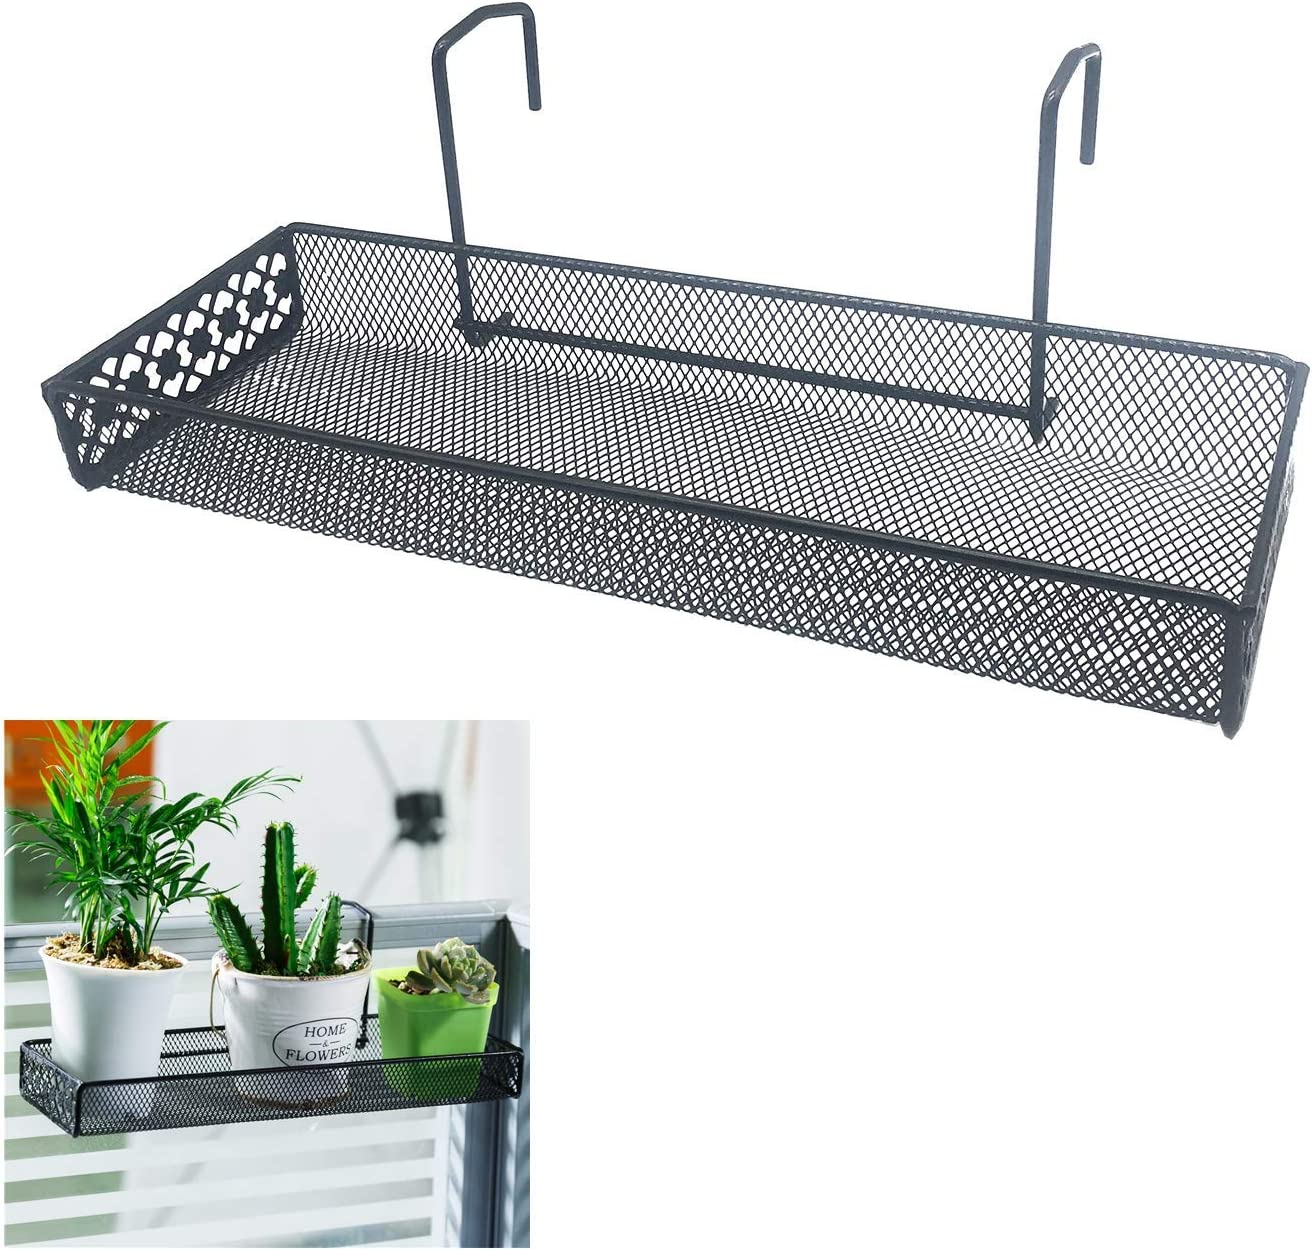 Chris.W Iron Hanging Shelf Basket with Hooks Balcony Succulent Plants Mini Flower Pot Holder Railing Shelf, for Patio Porch or Fence (Black)-Small